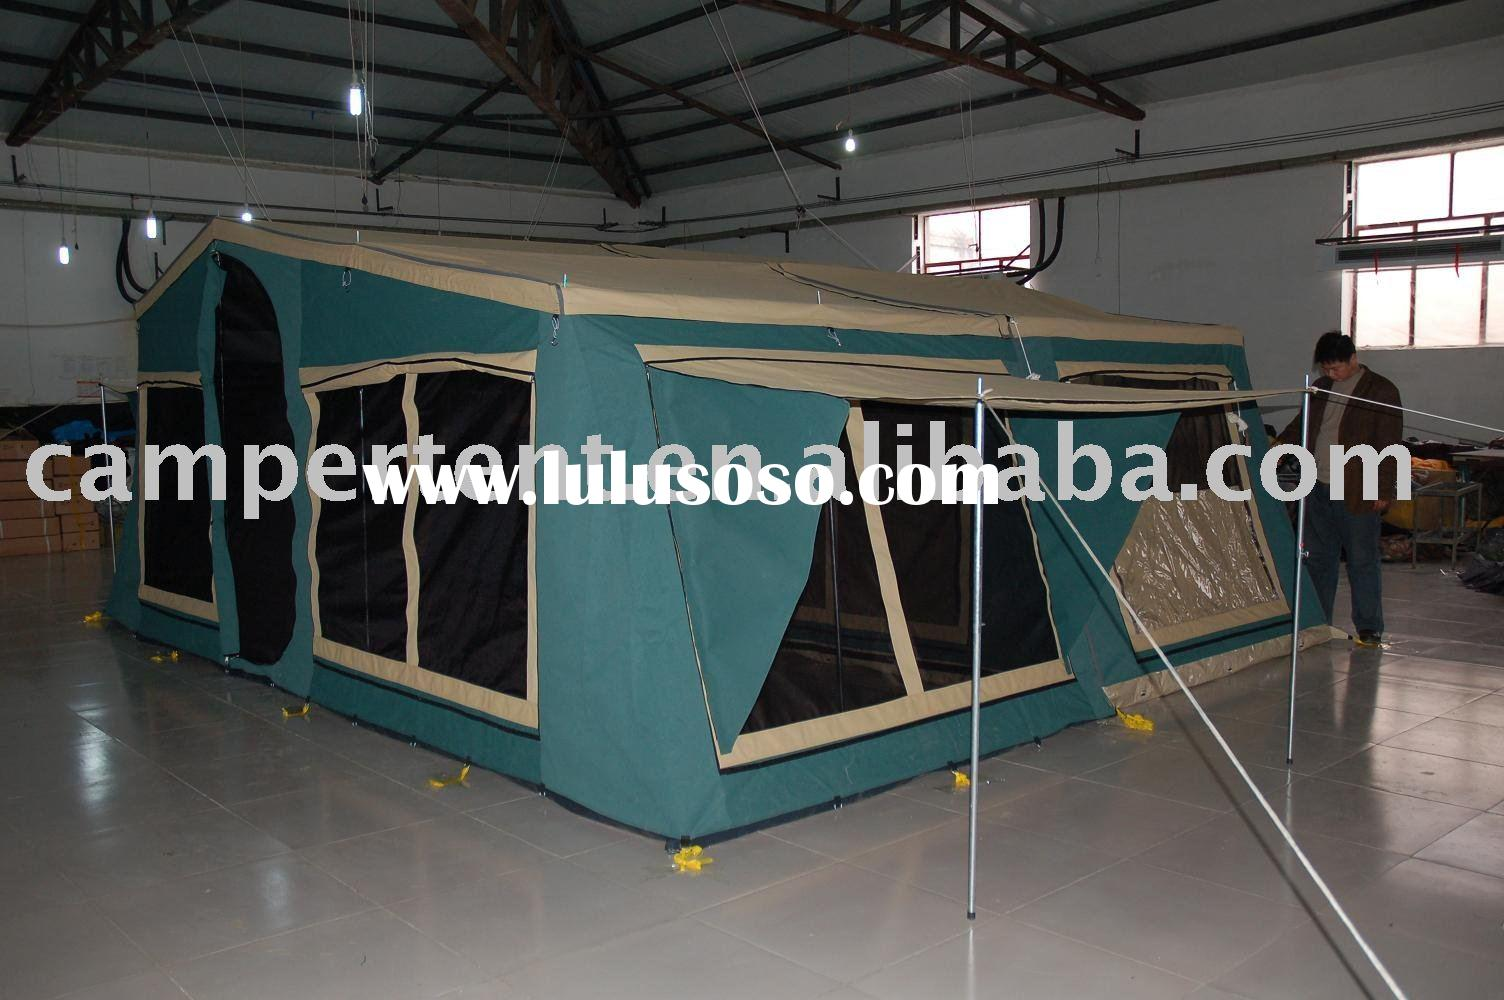 camping trailer tent 6004 for 6-8 person